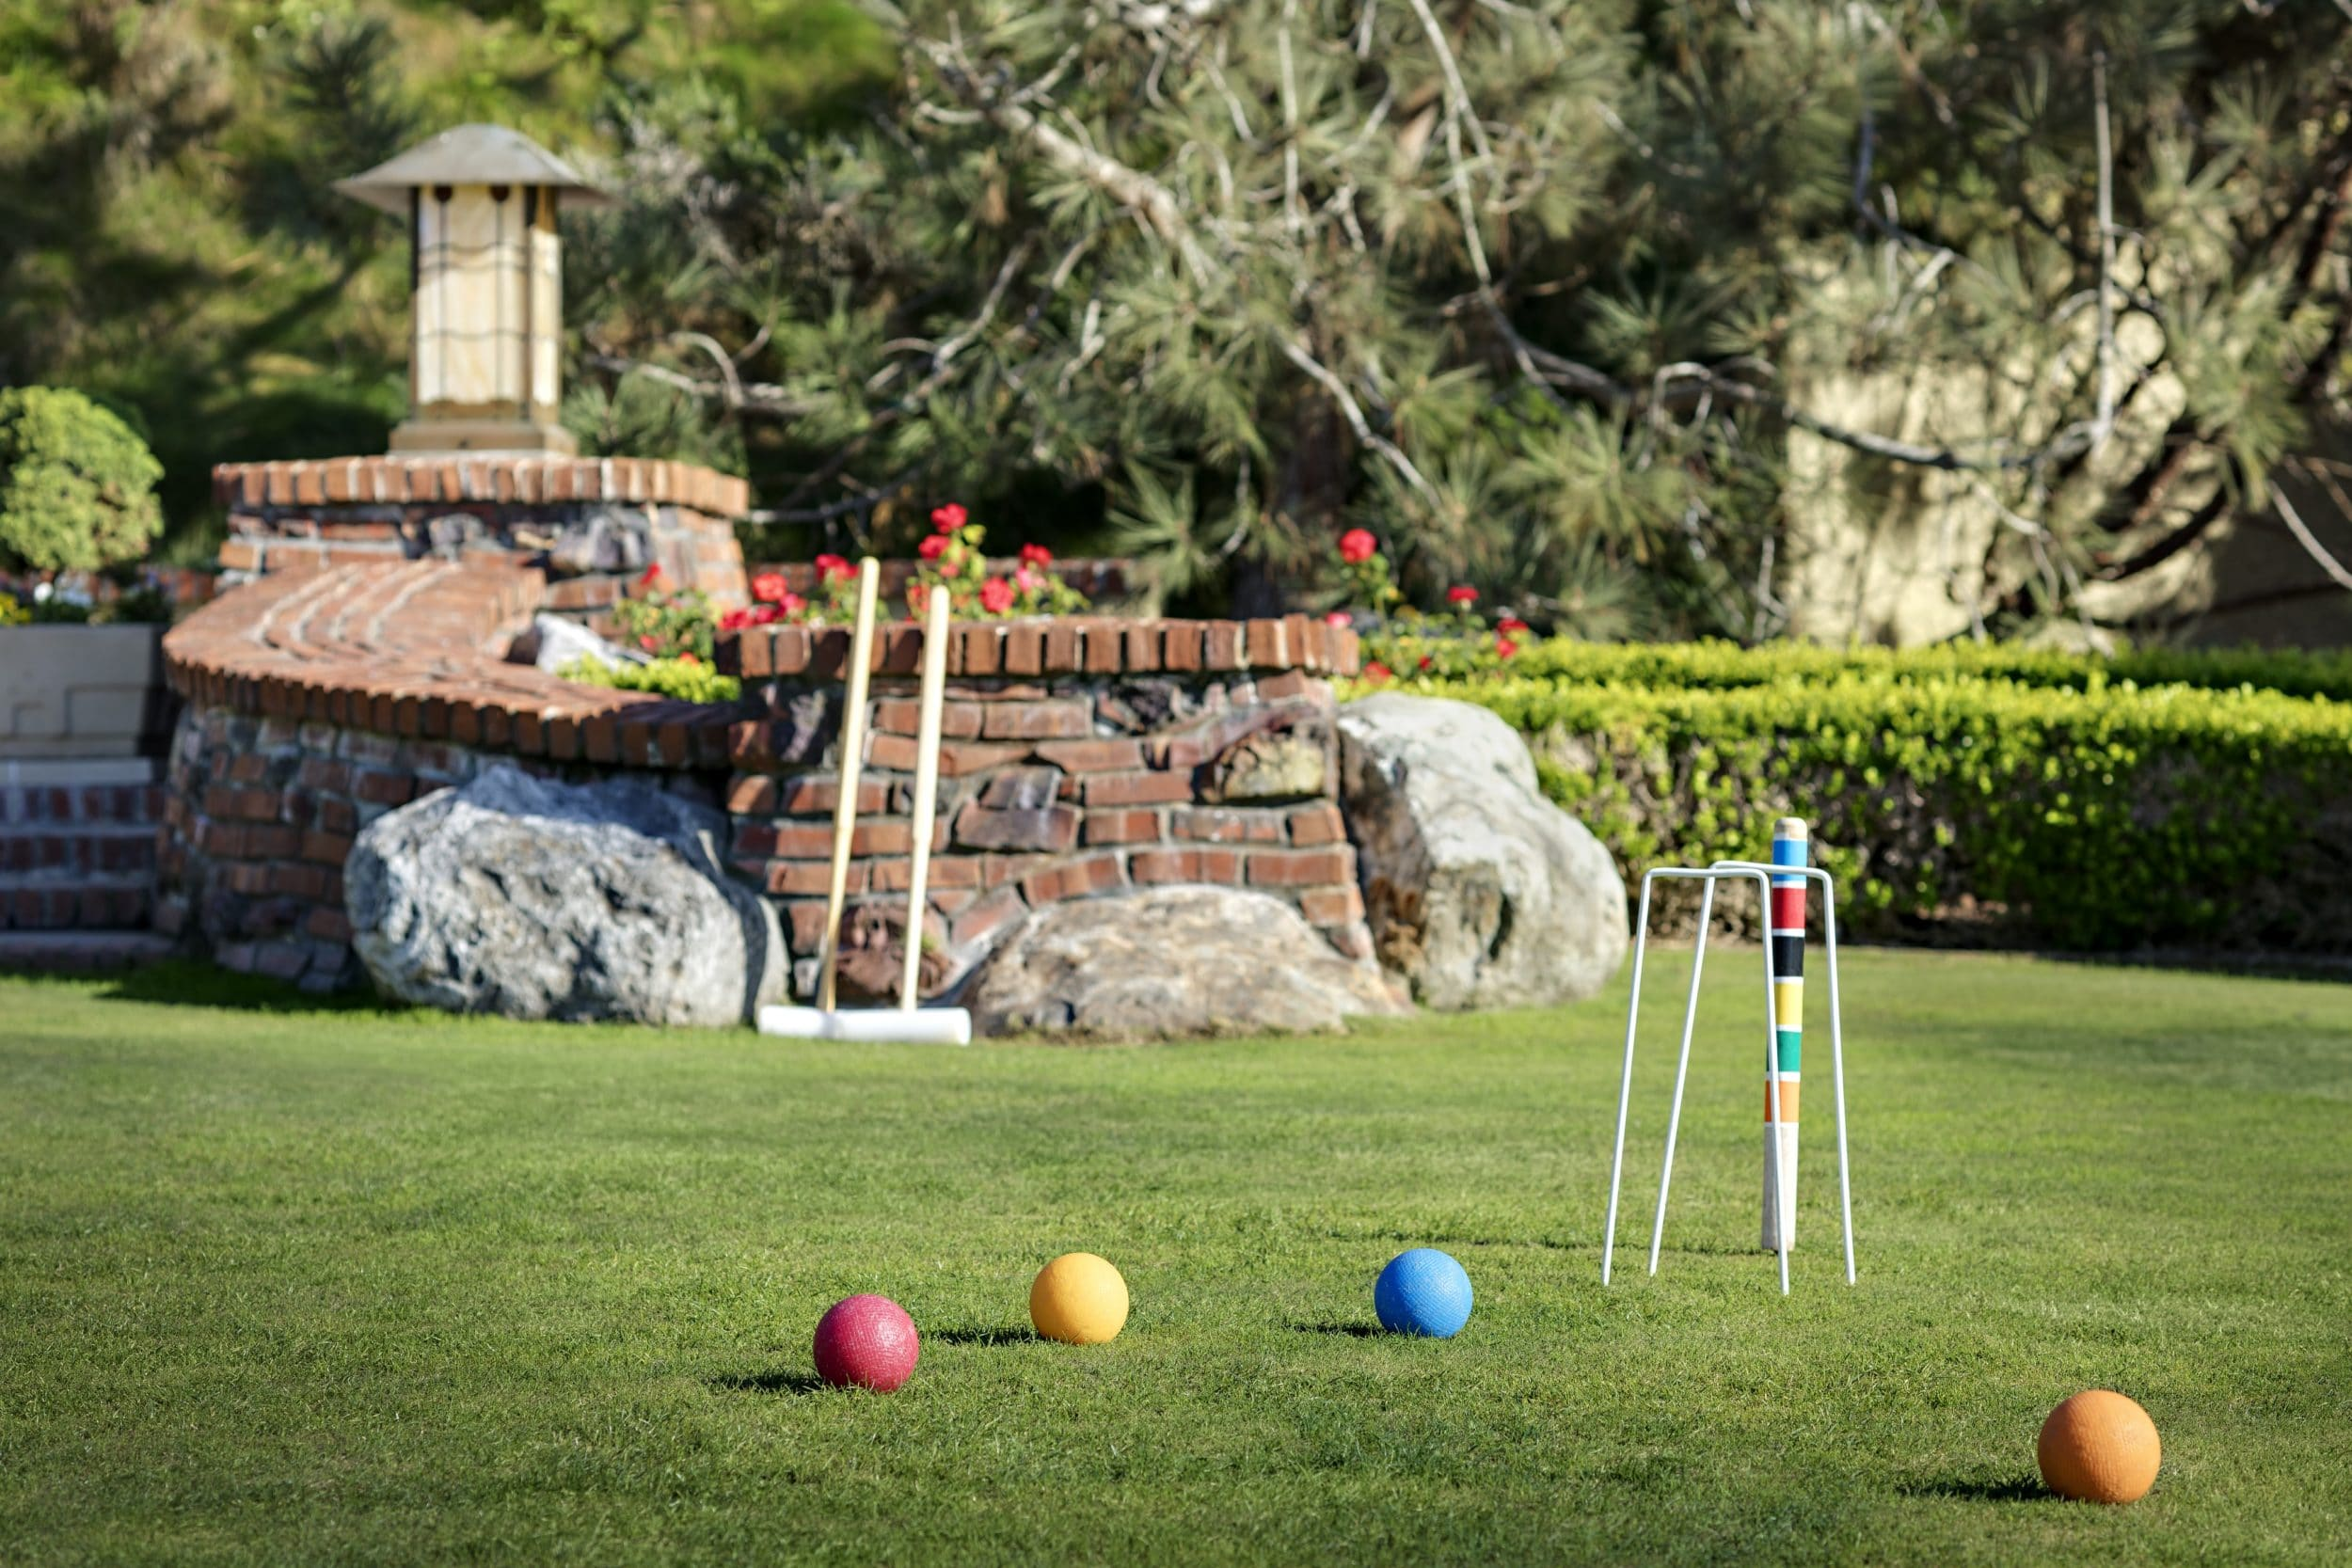 Croquet set up on the lawn at The Lodge at Torrey Pines